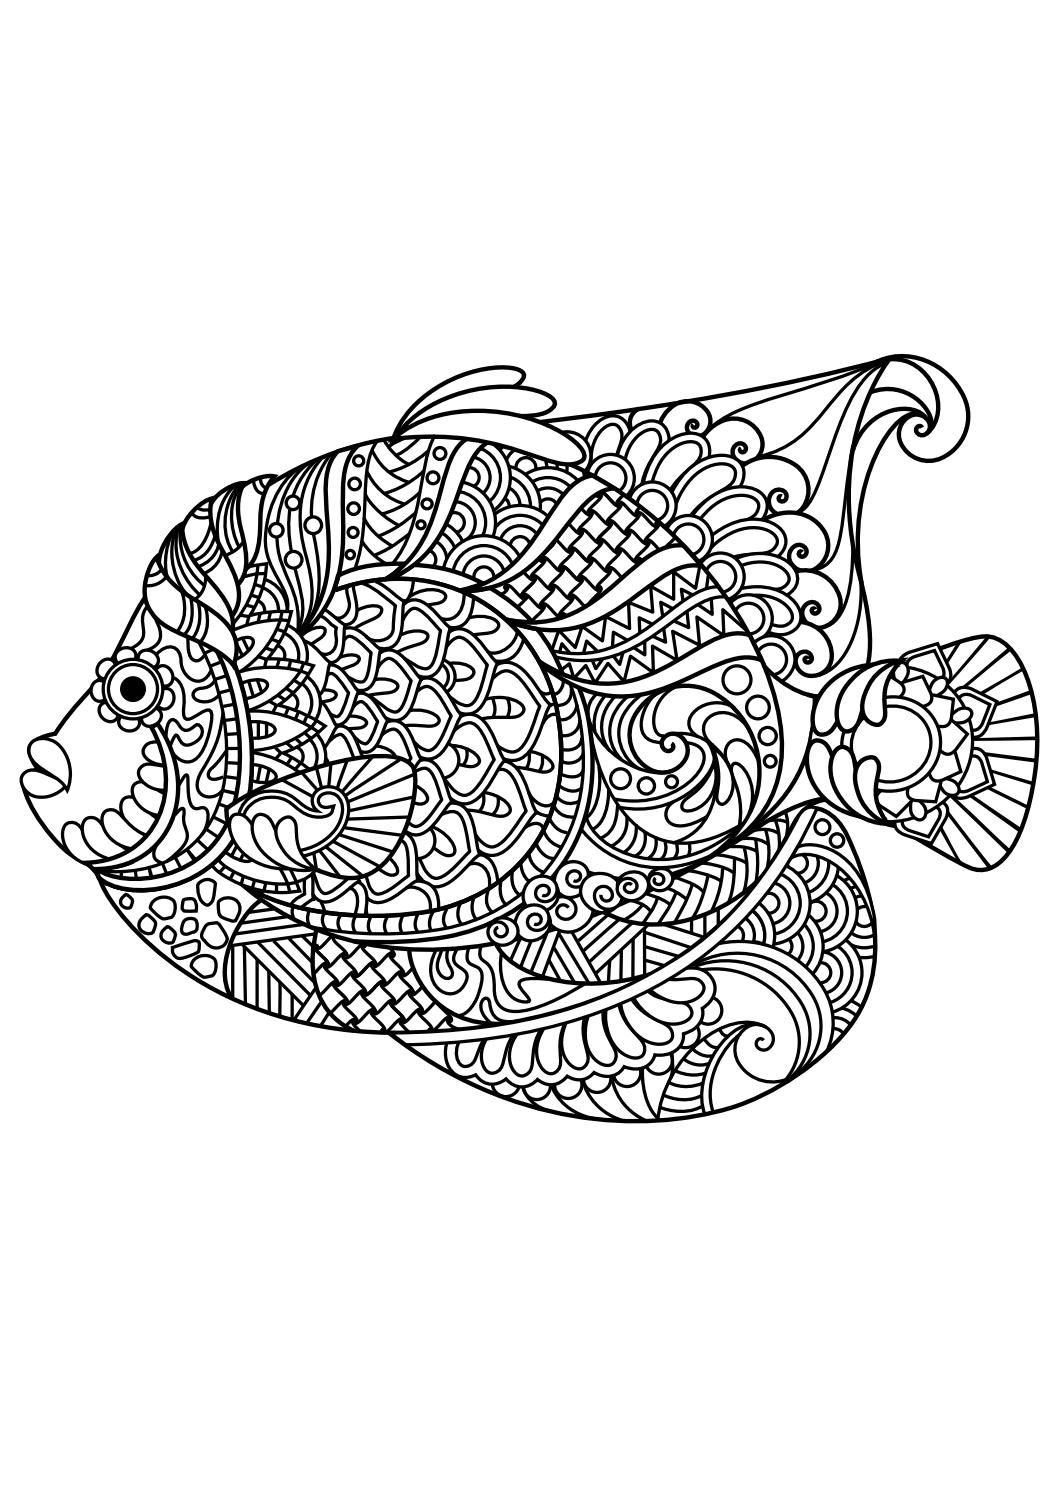 Fish Coloring Pages Pdf : coloring, pages